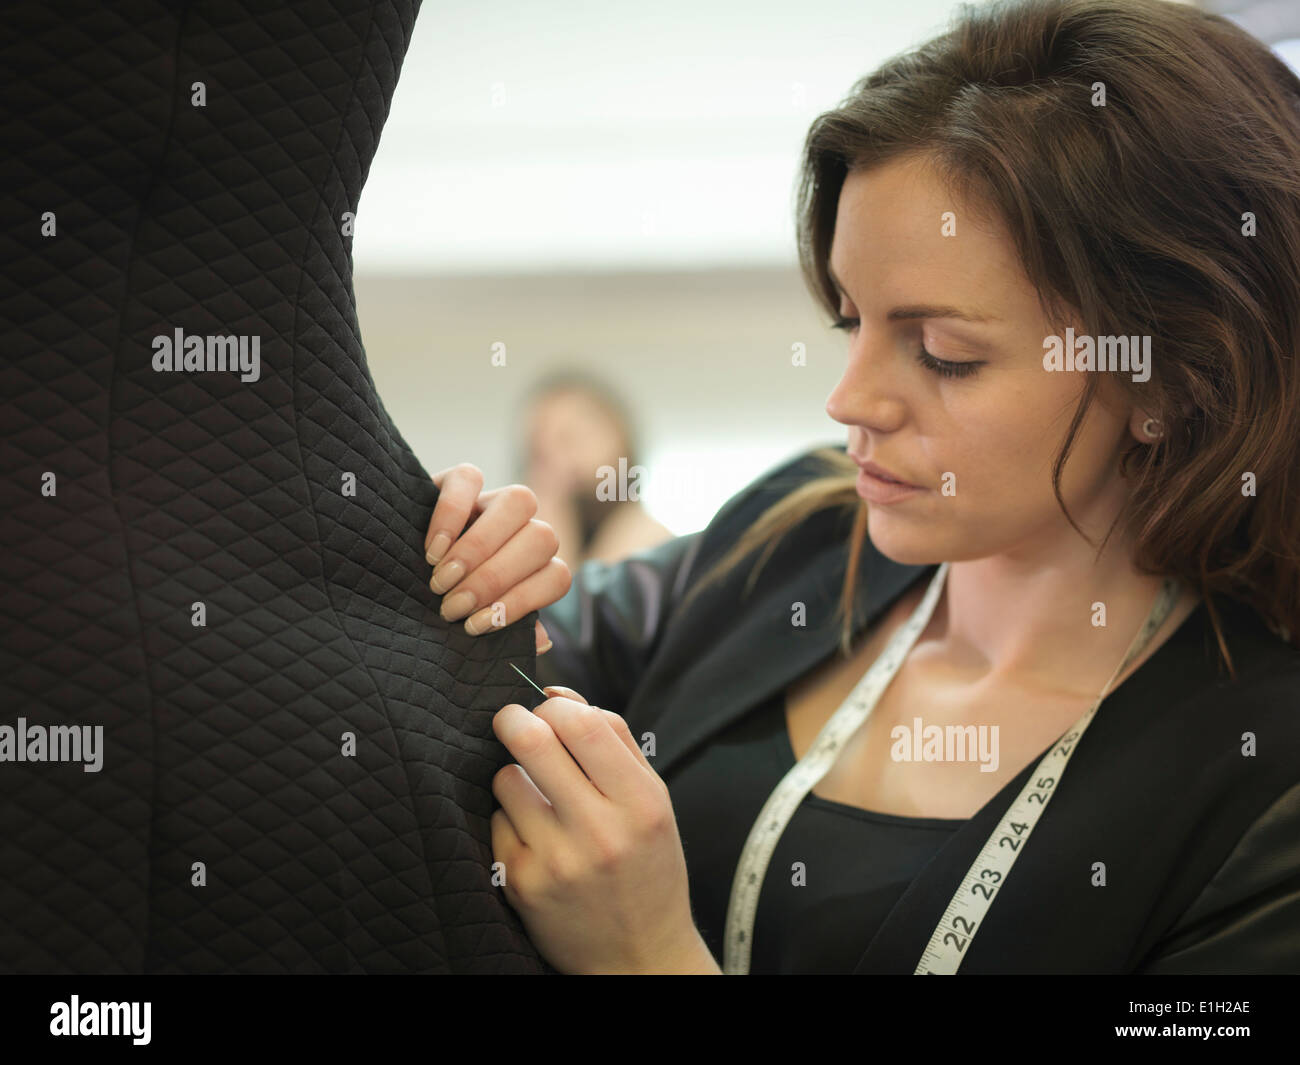 Fashion designer adjusting garment in fashion design studio - Stock Image